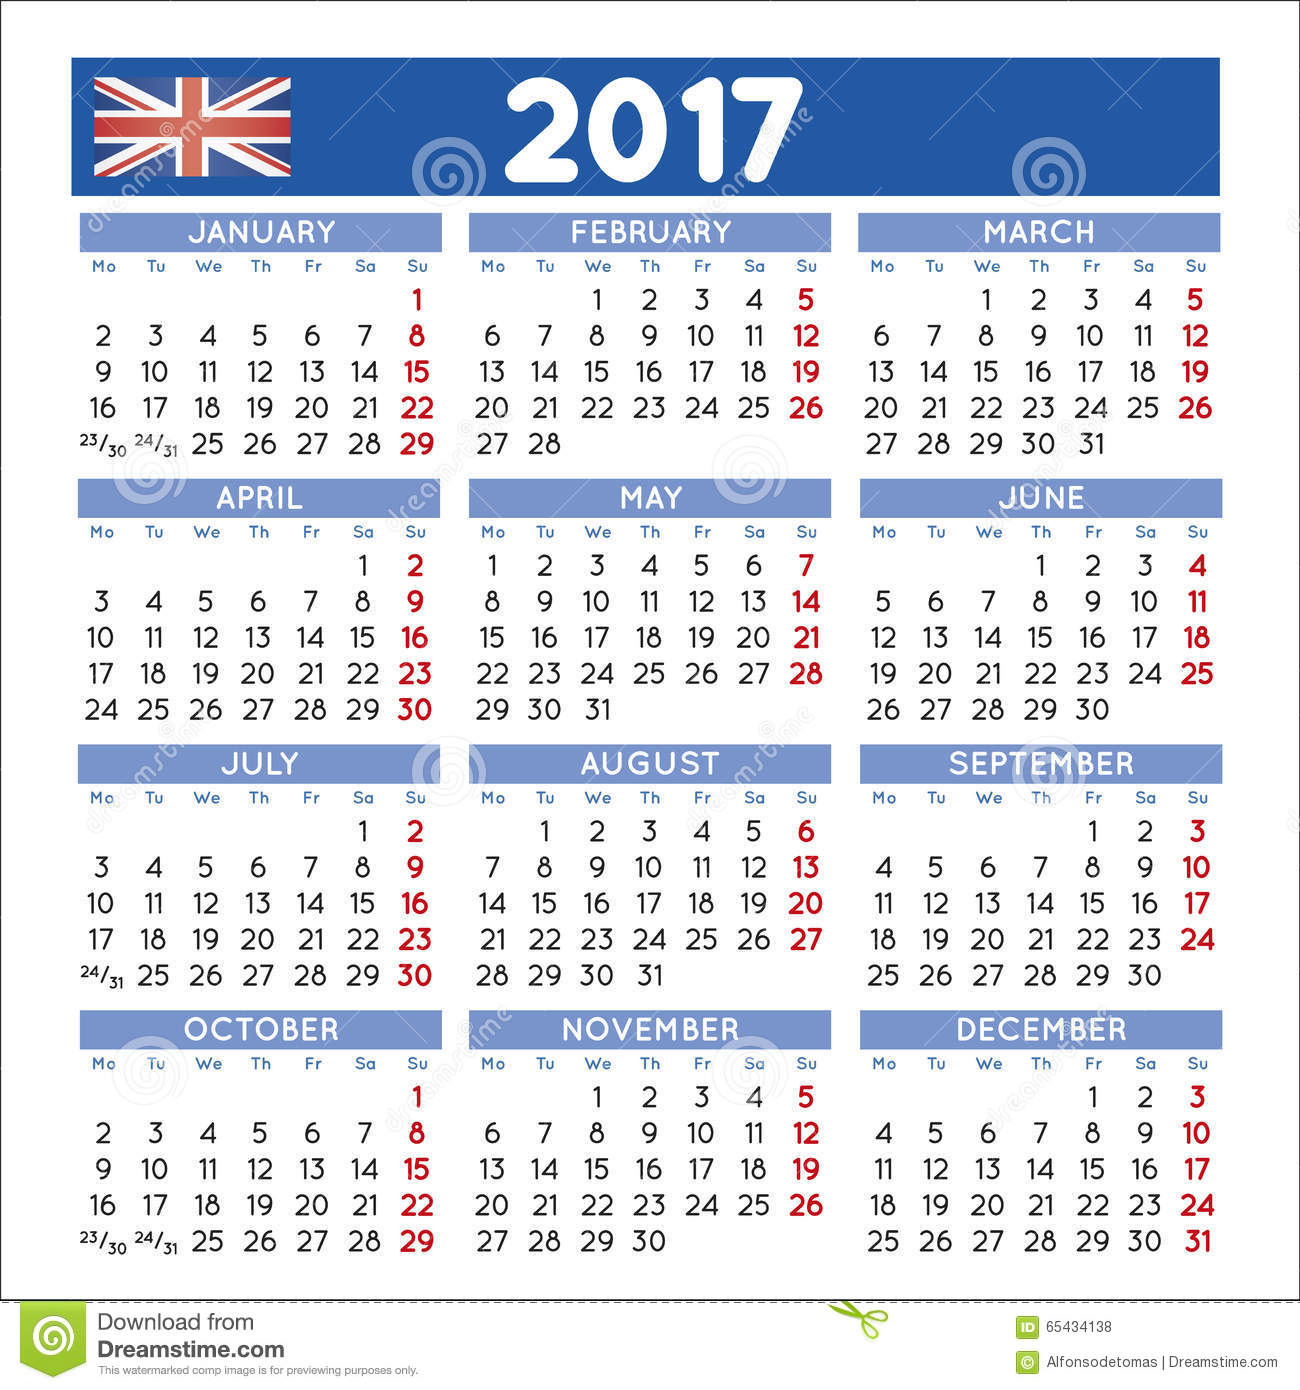 Download Calendar 2017 Uk